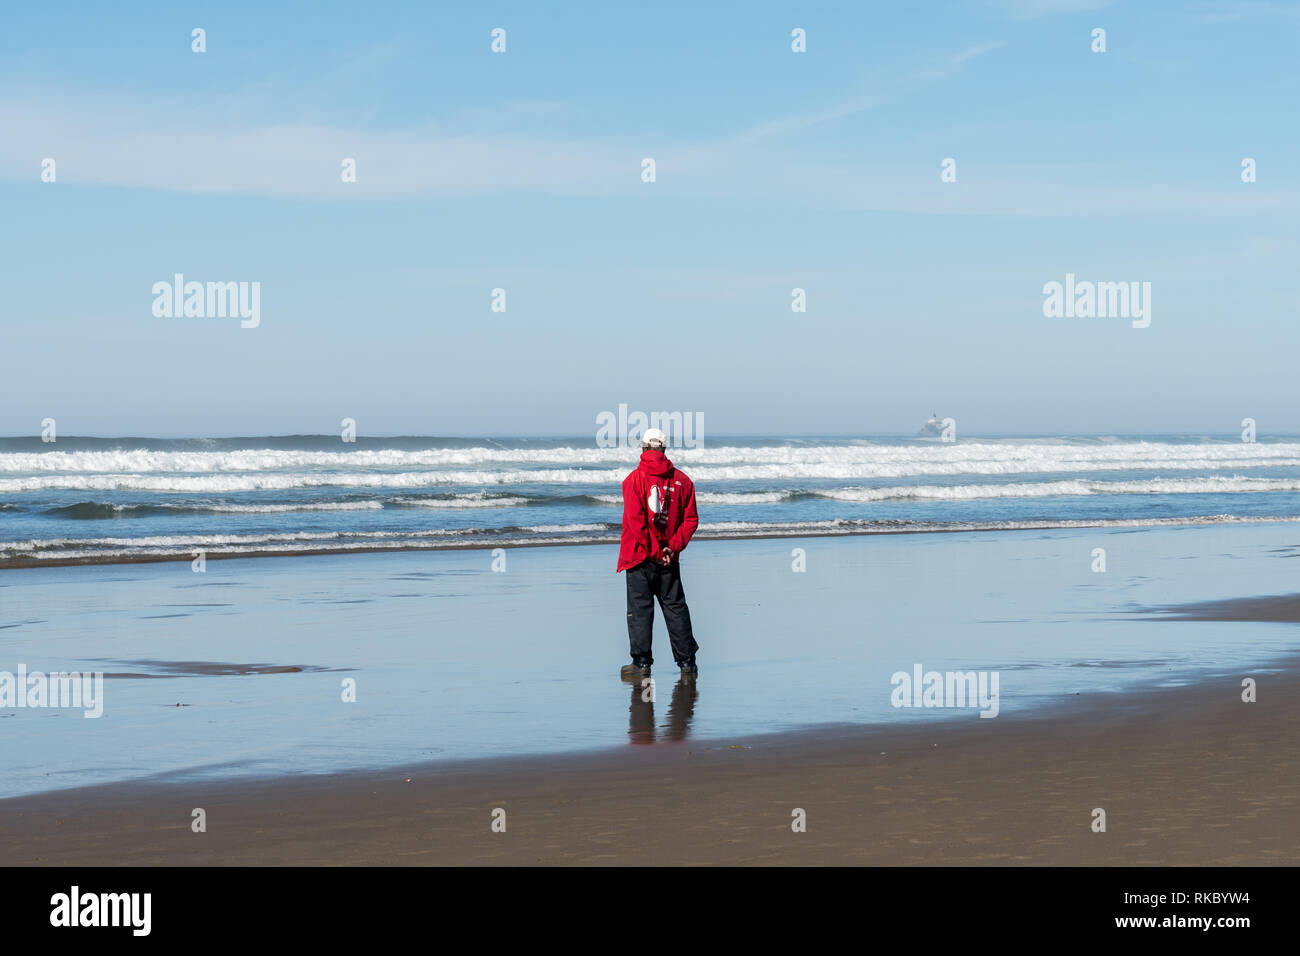 A member of Haystack Rock Awareness Programs with his signature red sweatshirt watches and observes the ocean - Stock Image